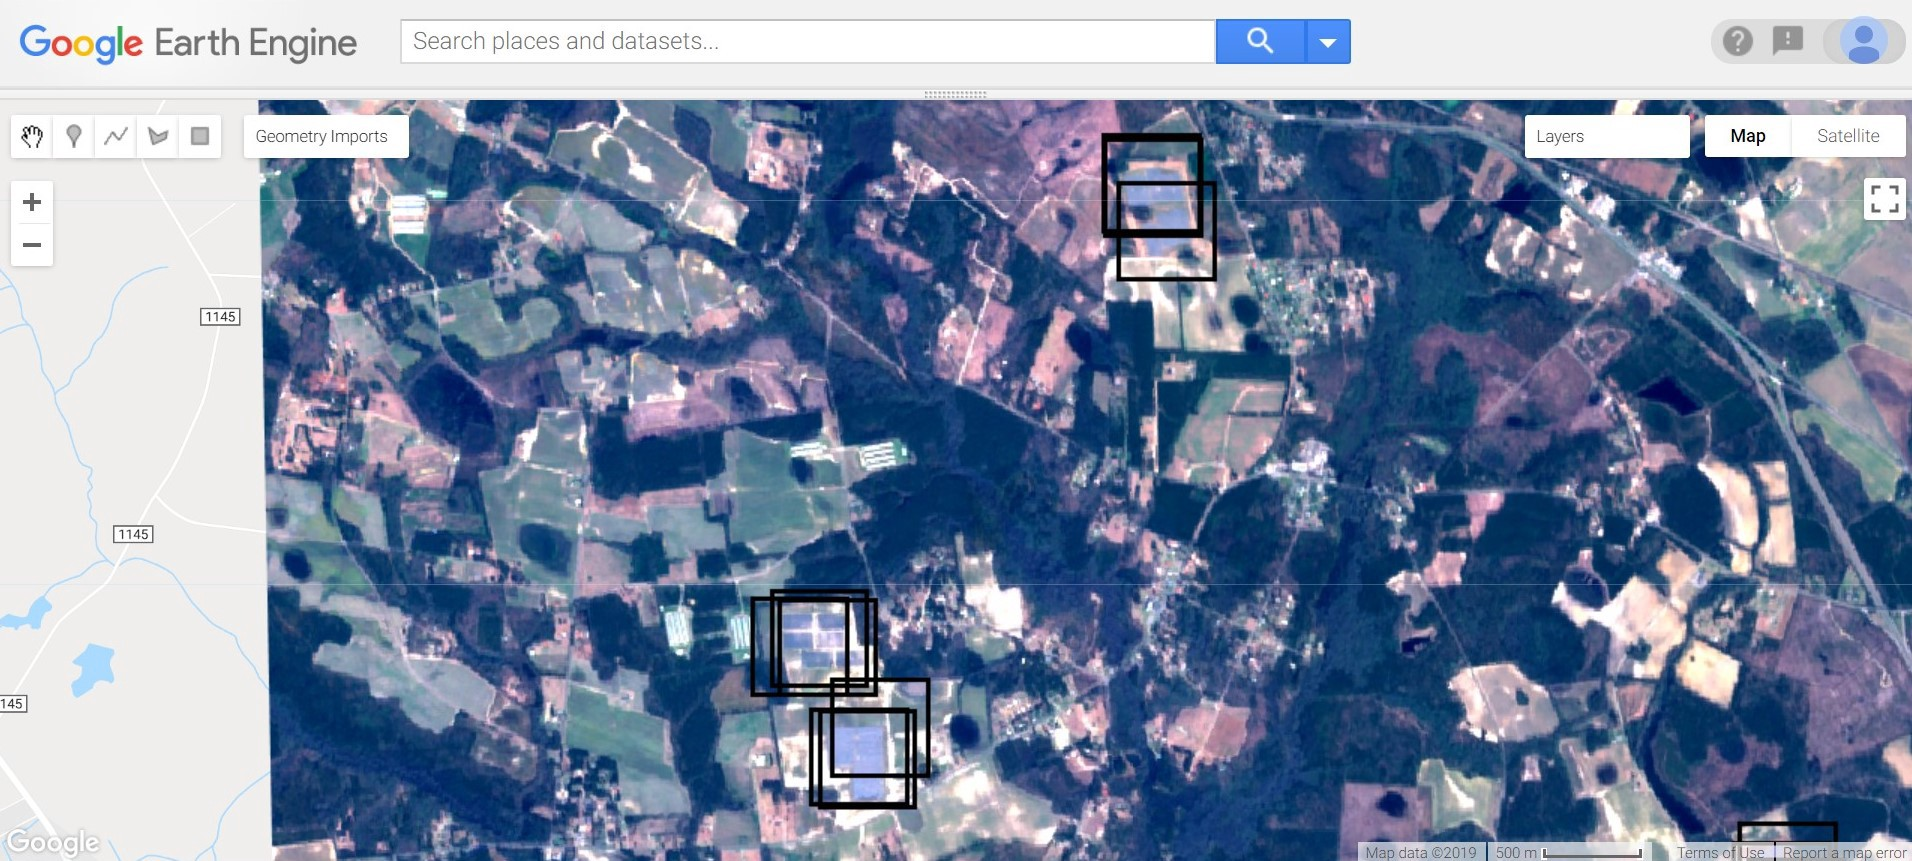 Construction shown on satellite imagery